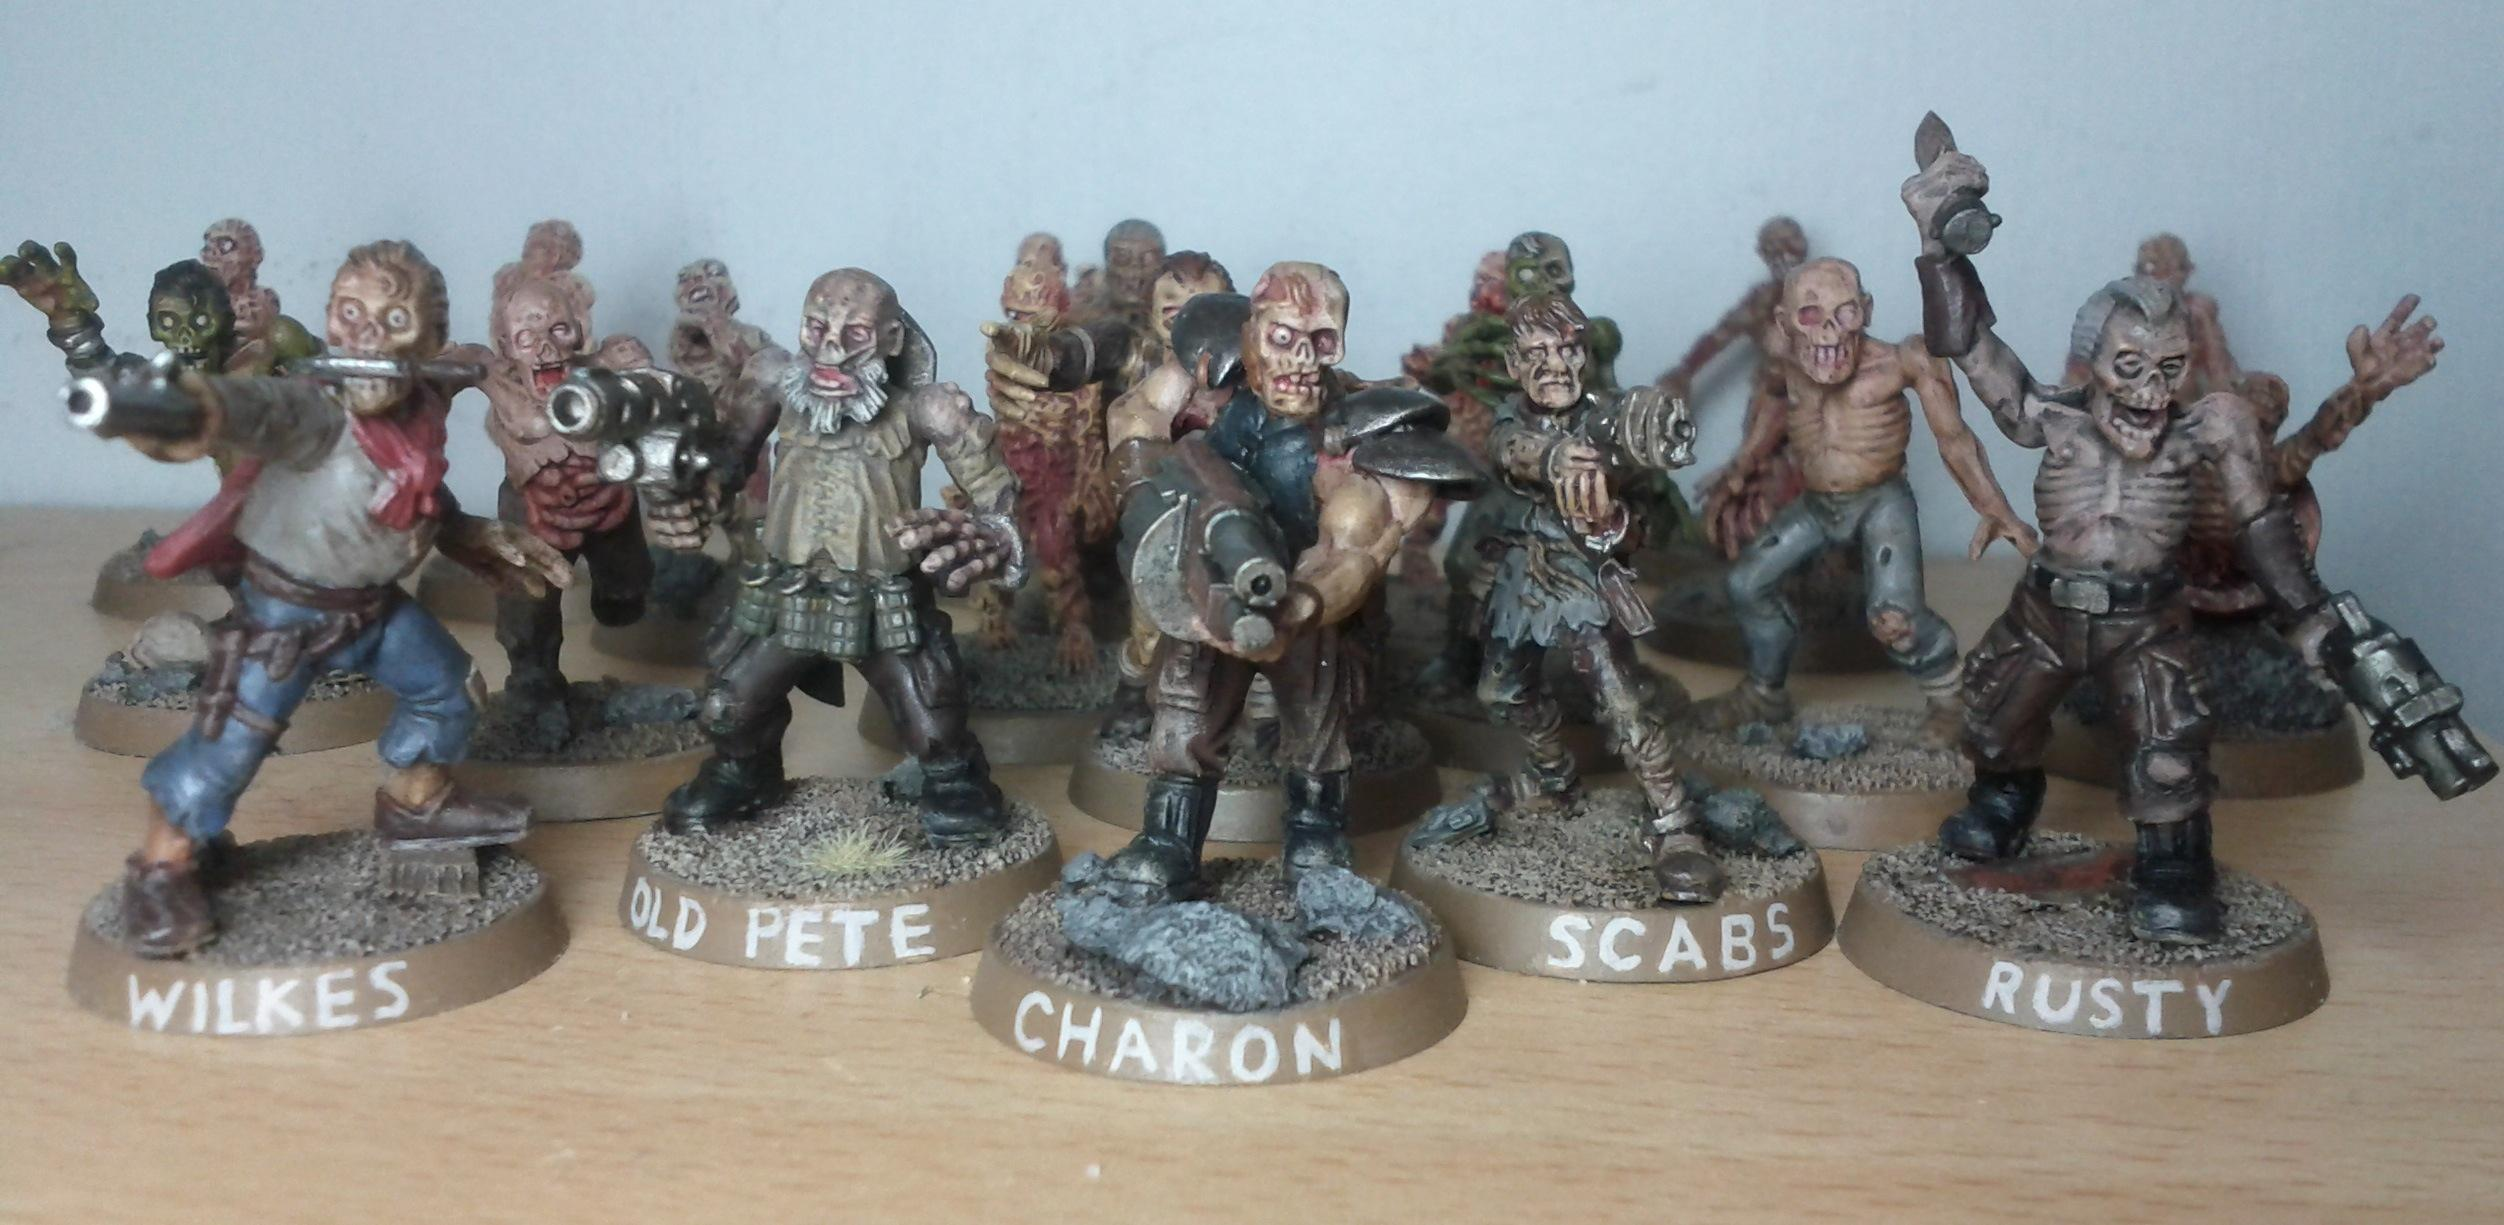 Charon, Eureka, Fallout, Ghoul, Kitbash, Pete, Rusty, Waseland, Wilkes, Zombie